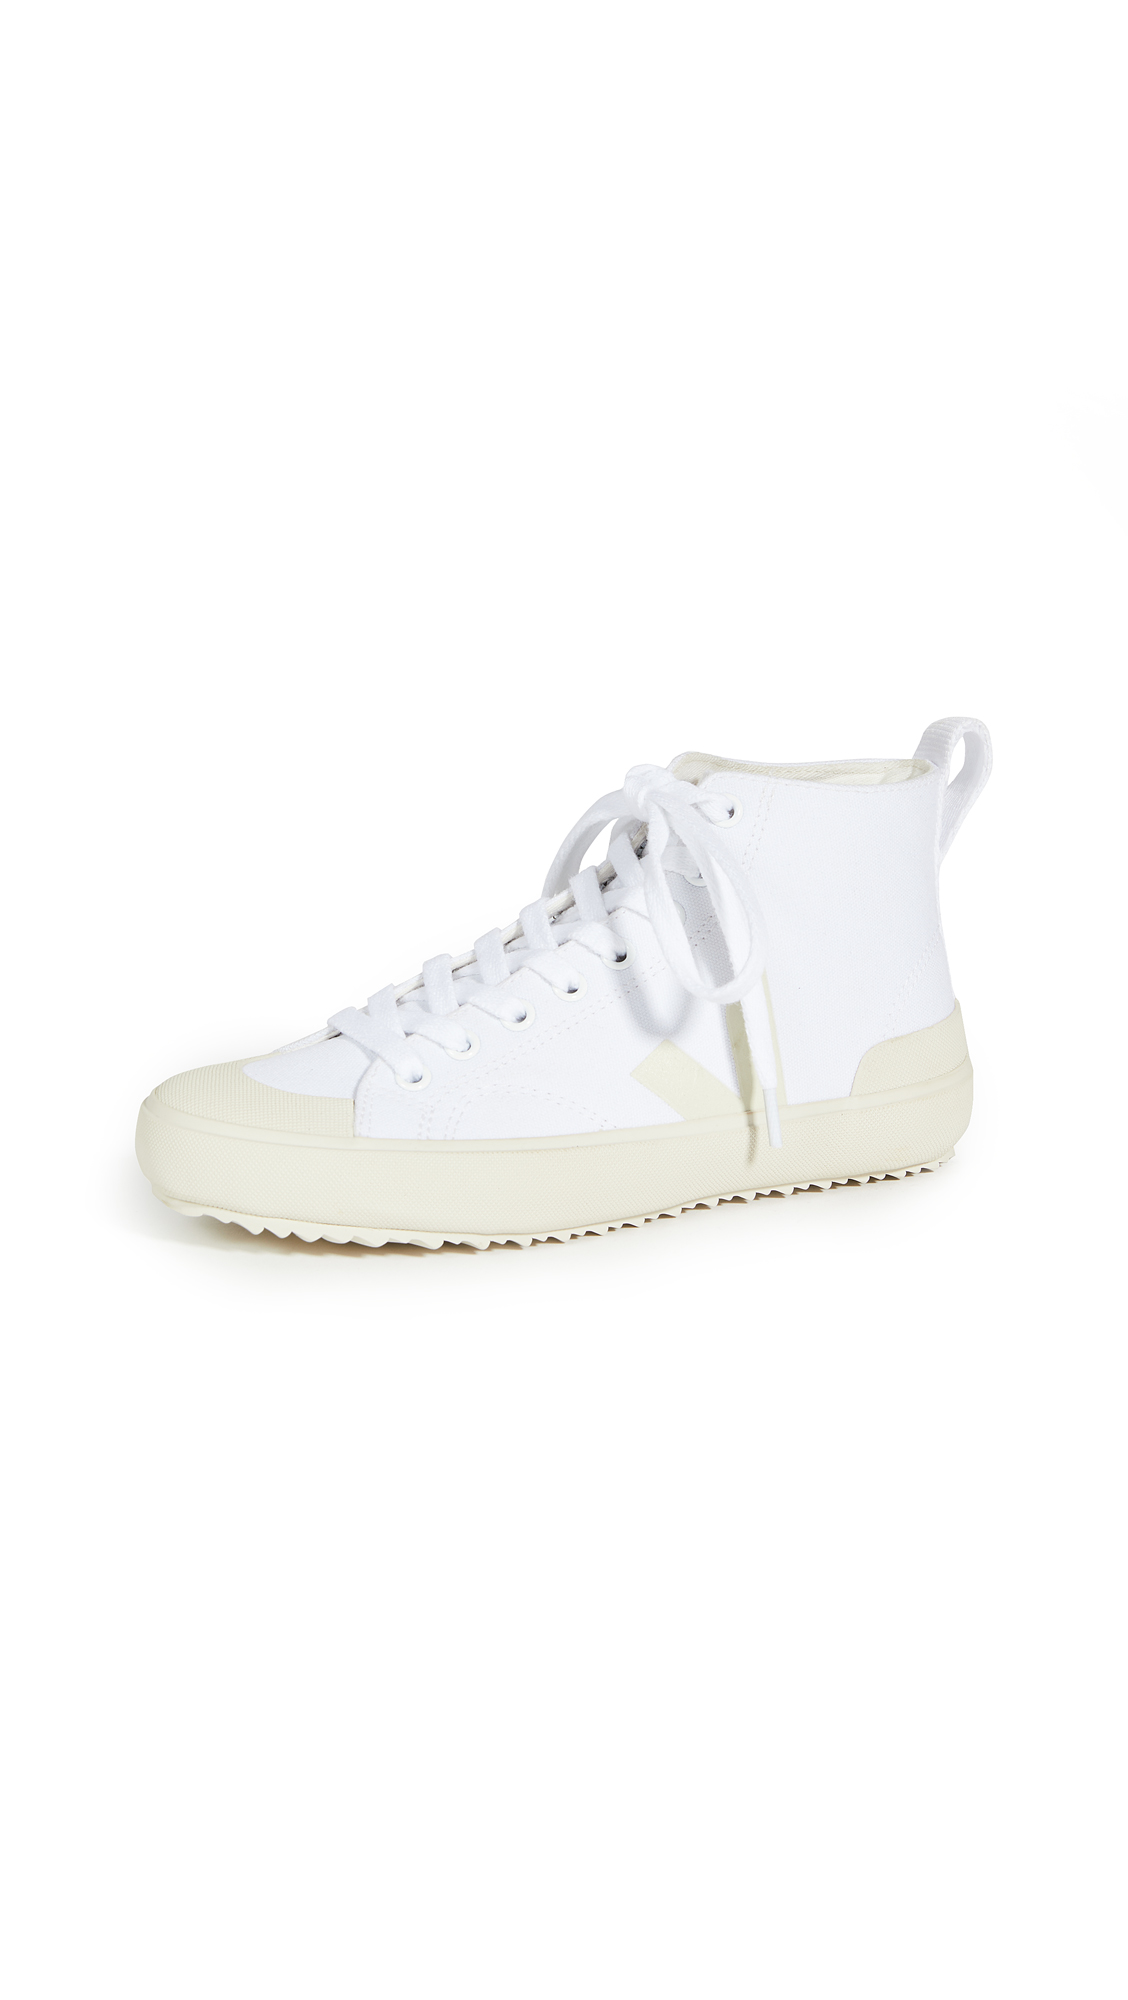 Veja Nova High Top Vegan Sneakers